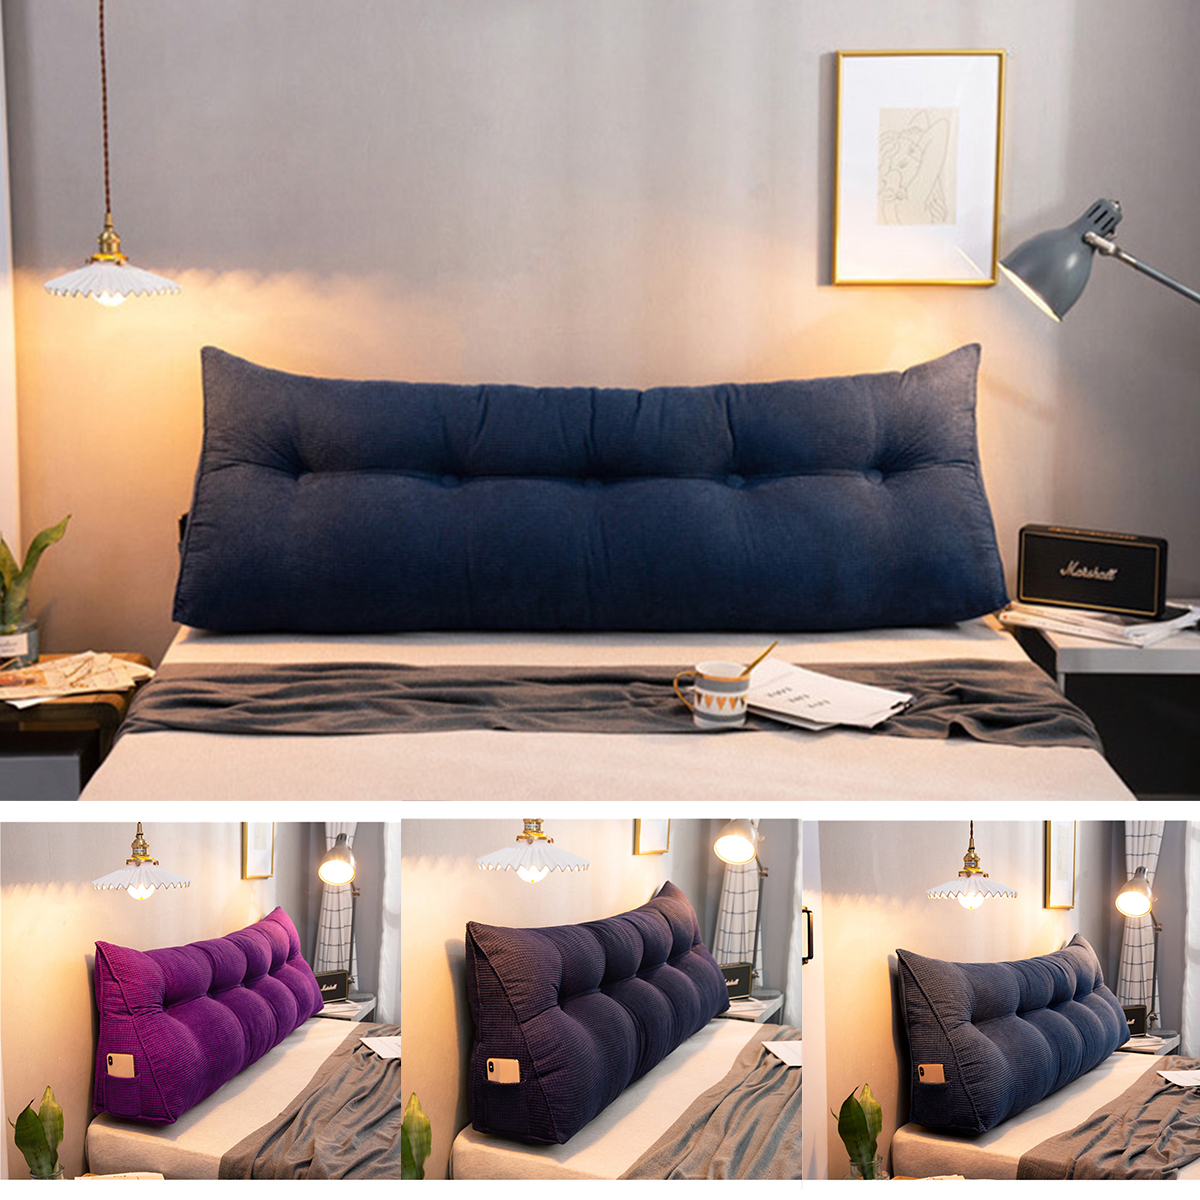 bed headrest sofa bed large filled wedge triangular support pillow cushion bedside pillow bed backrest positioning reading pillow office sofa tatami